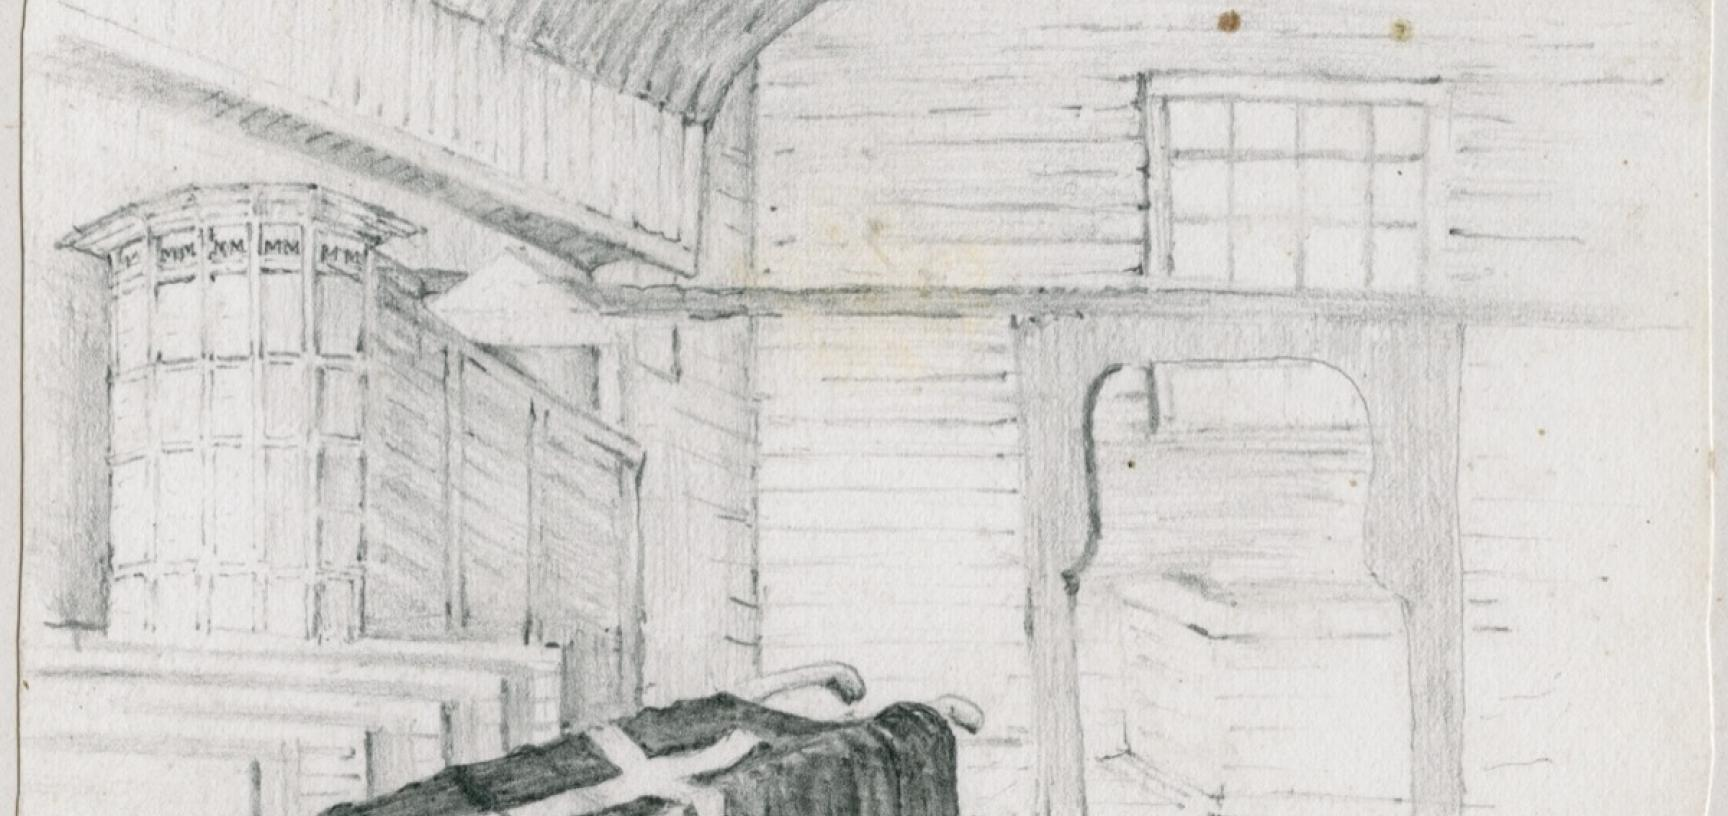 Interior of a disused church at Sodankylä, described by Arthur Evans in his diary: 'The Lapp church is a fit representation of a departed people. The picturesque, weather-stained timber can hardly hold together much longer, & the carved wooden pinnacles w